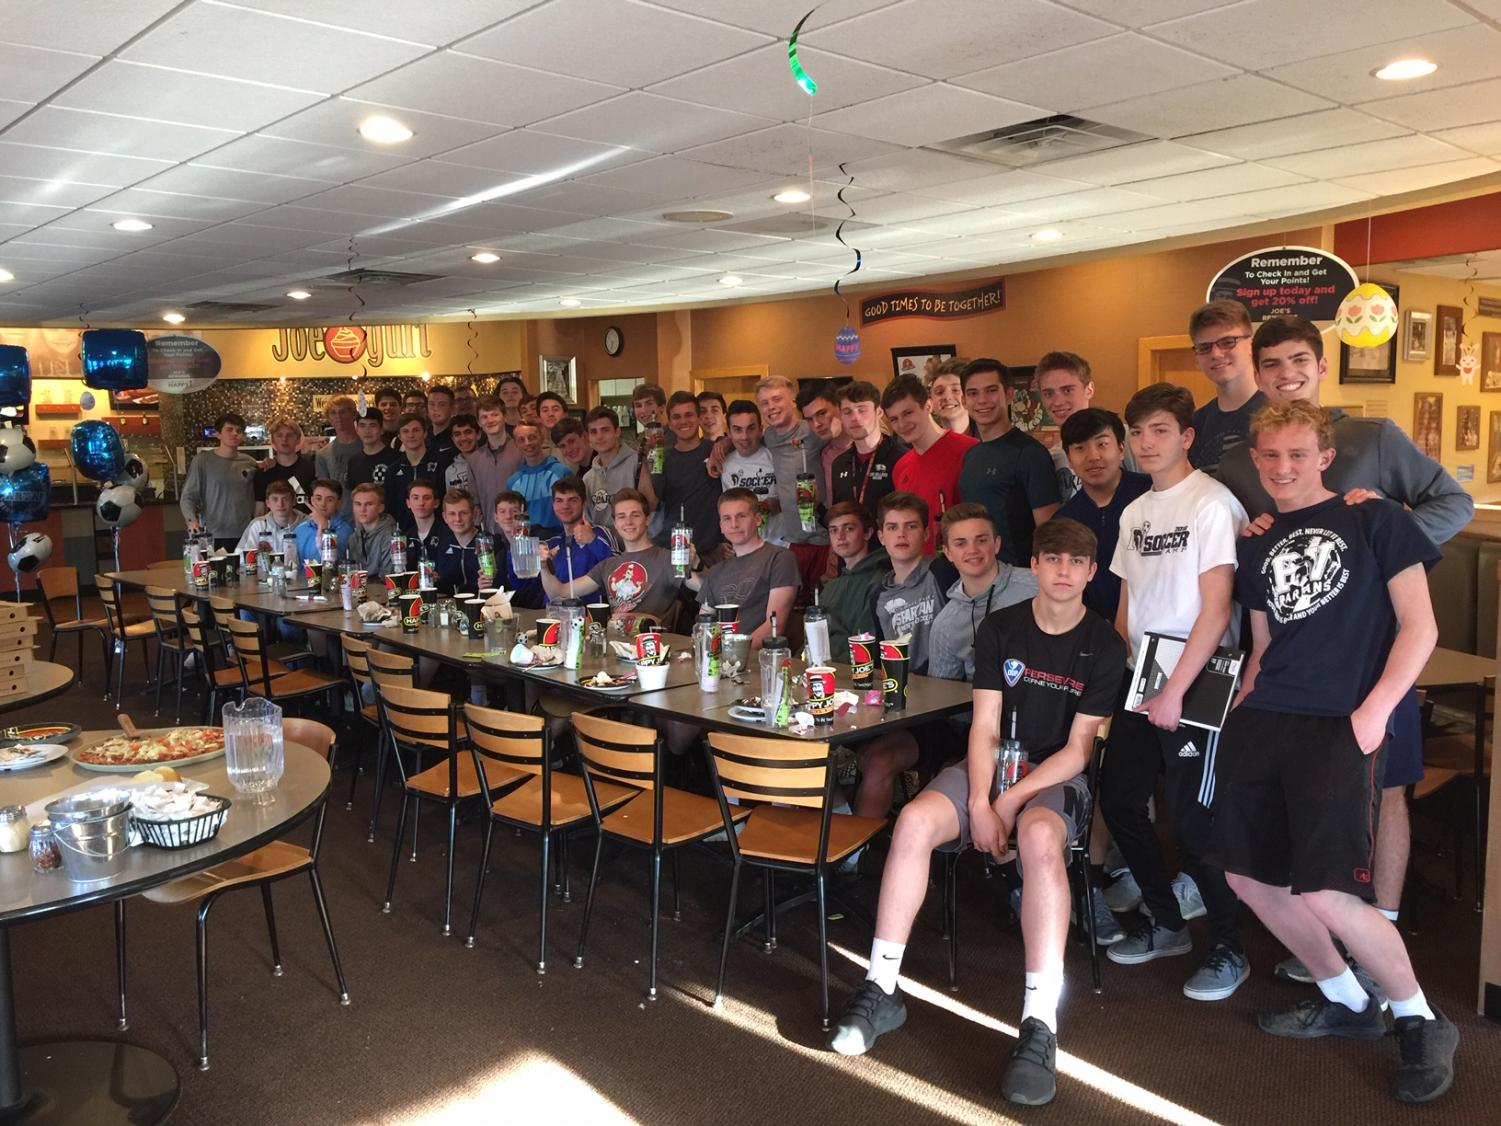 Pictured is the PV boys soccer team at a team dinner at Happy Joes.